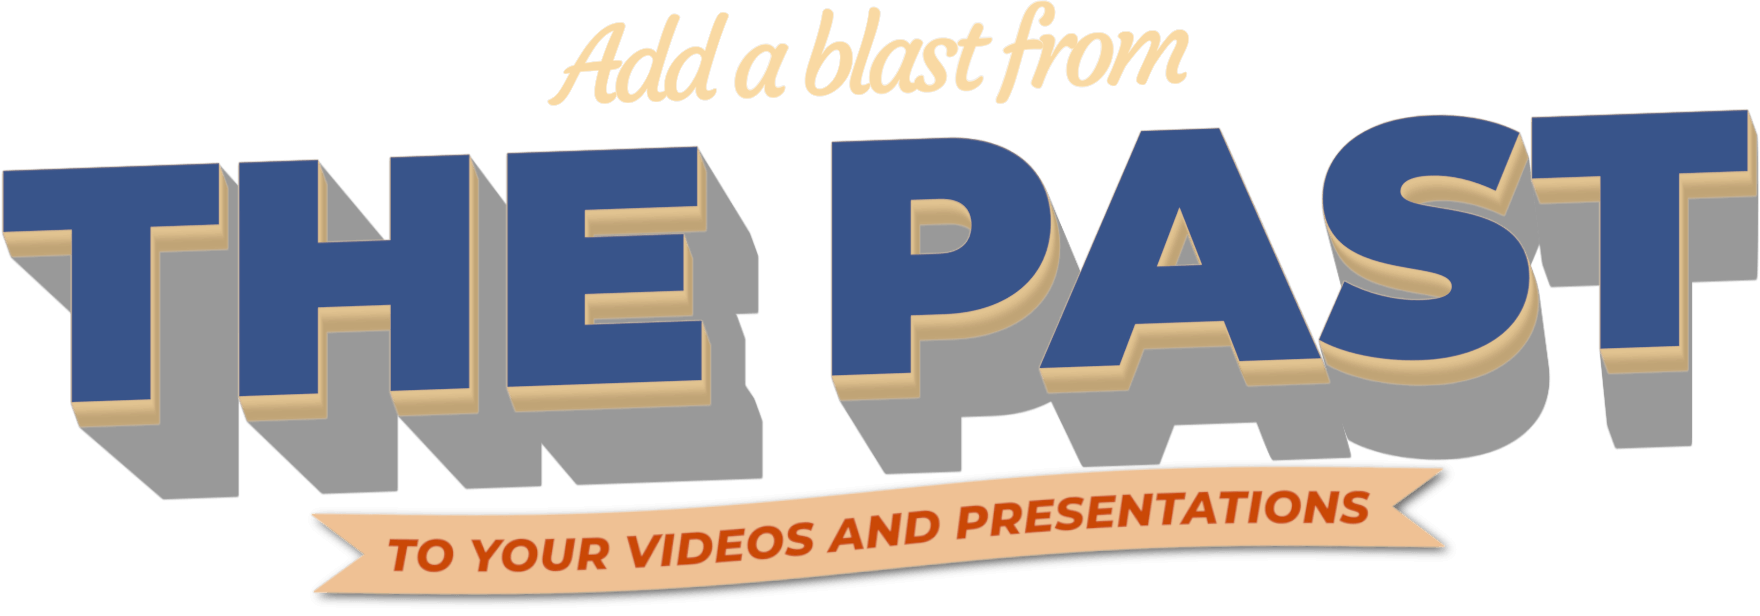 Add a blast from the past to your videos and presentations